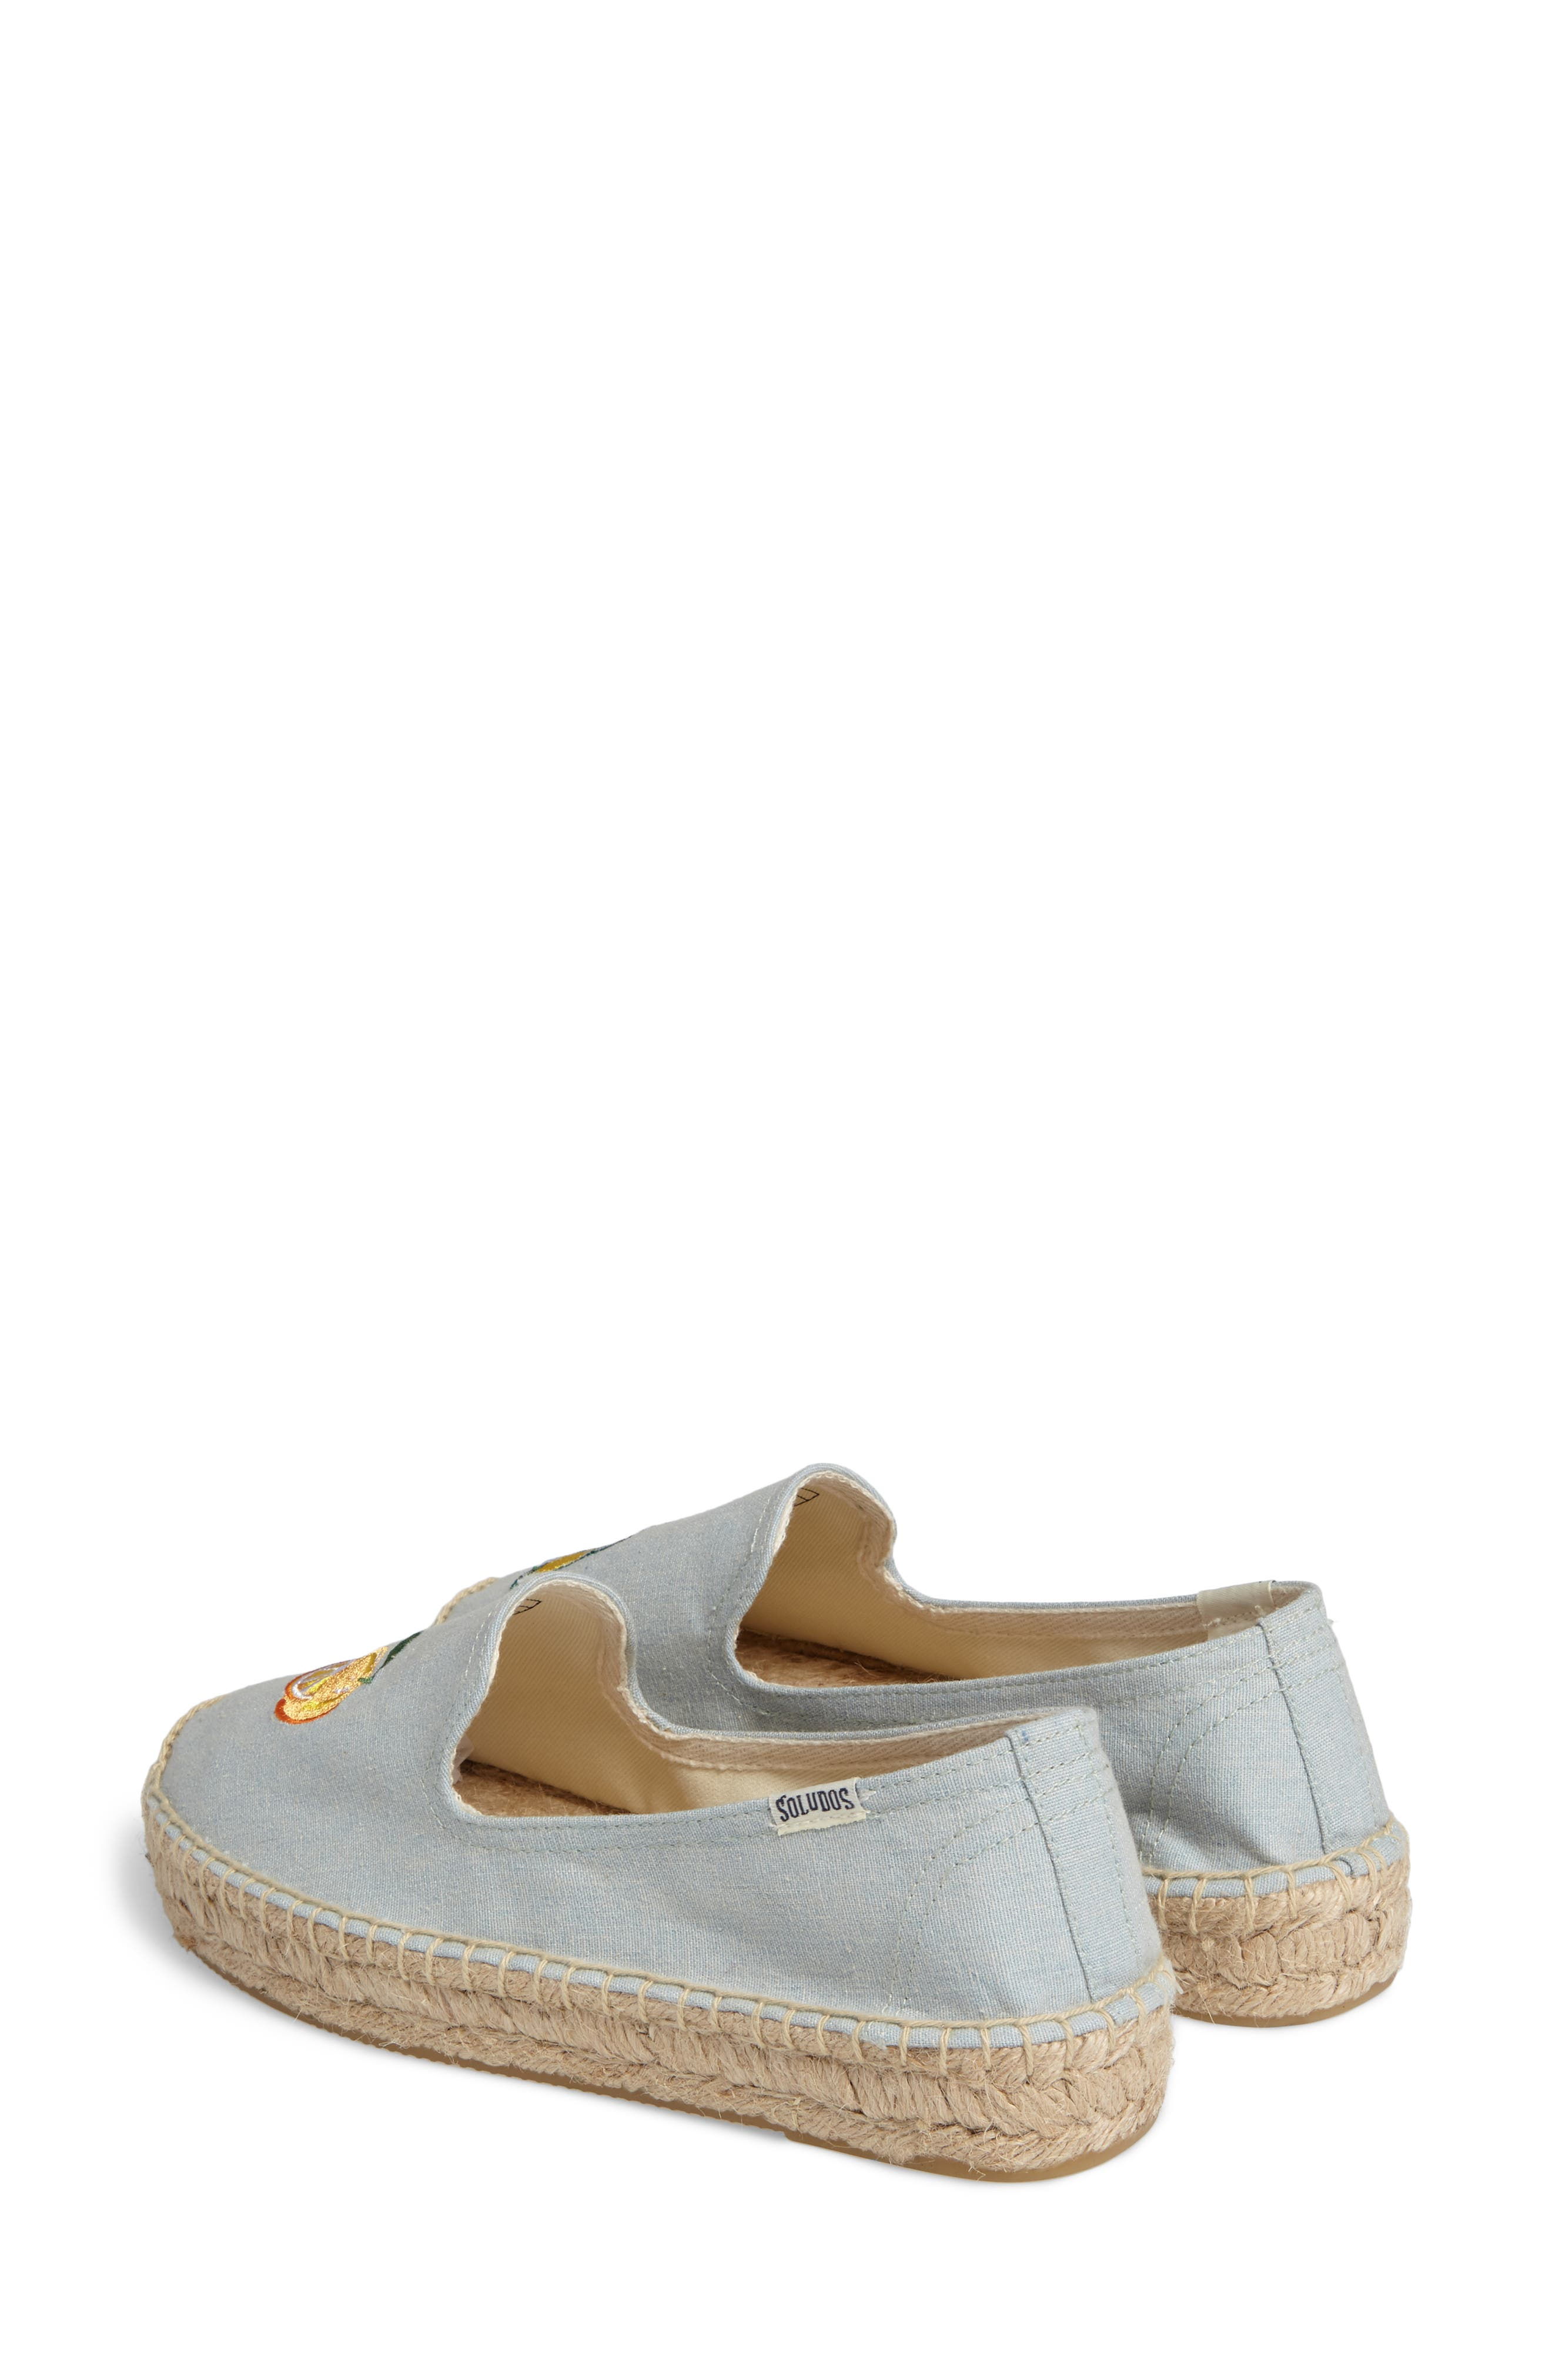 SOLUDOS,                             Mimosa Embroidered Platform Espadrille,                             Alternate thumbnail 2, color,                             420